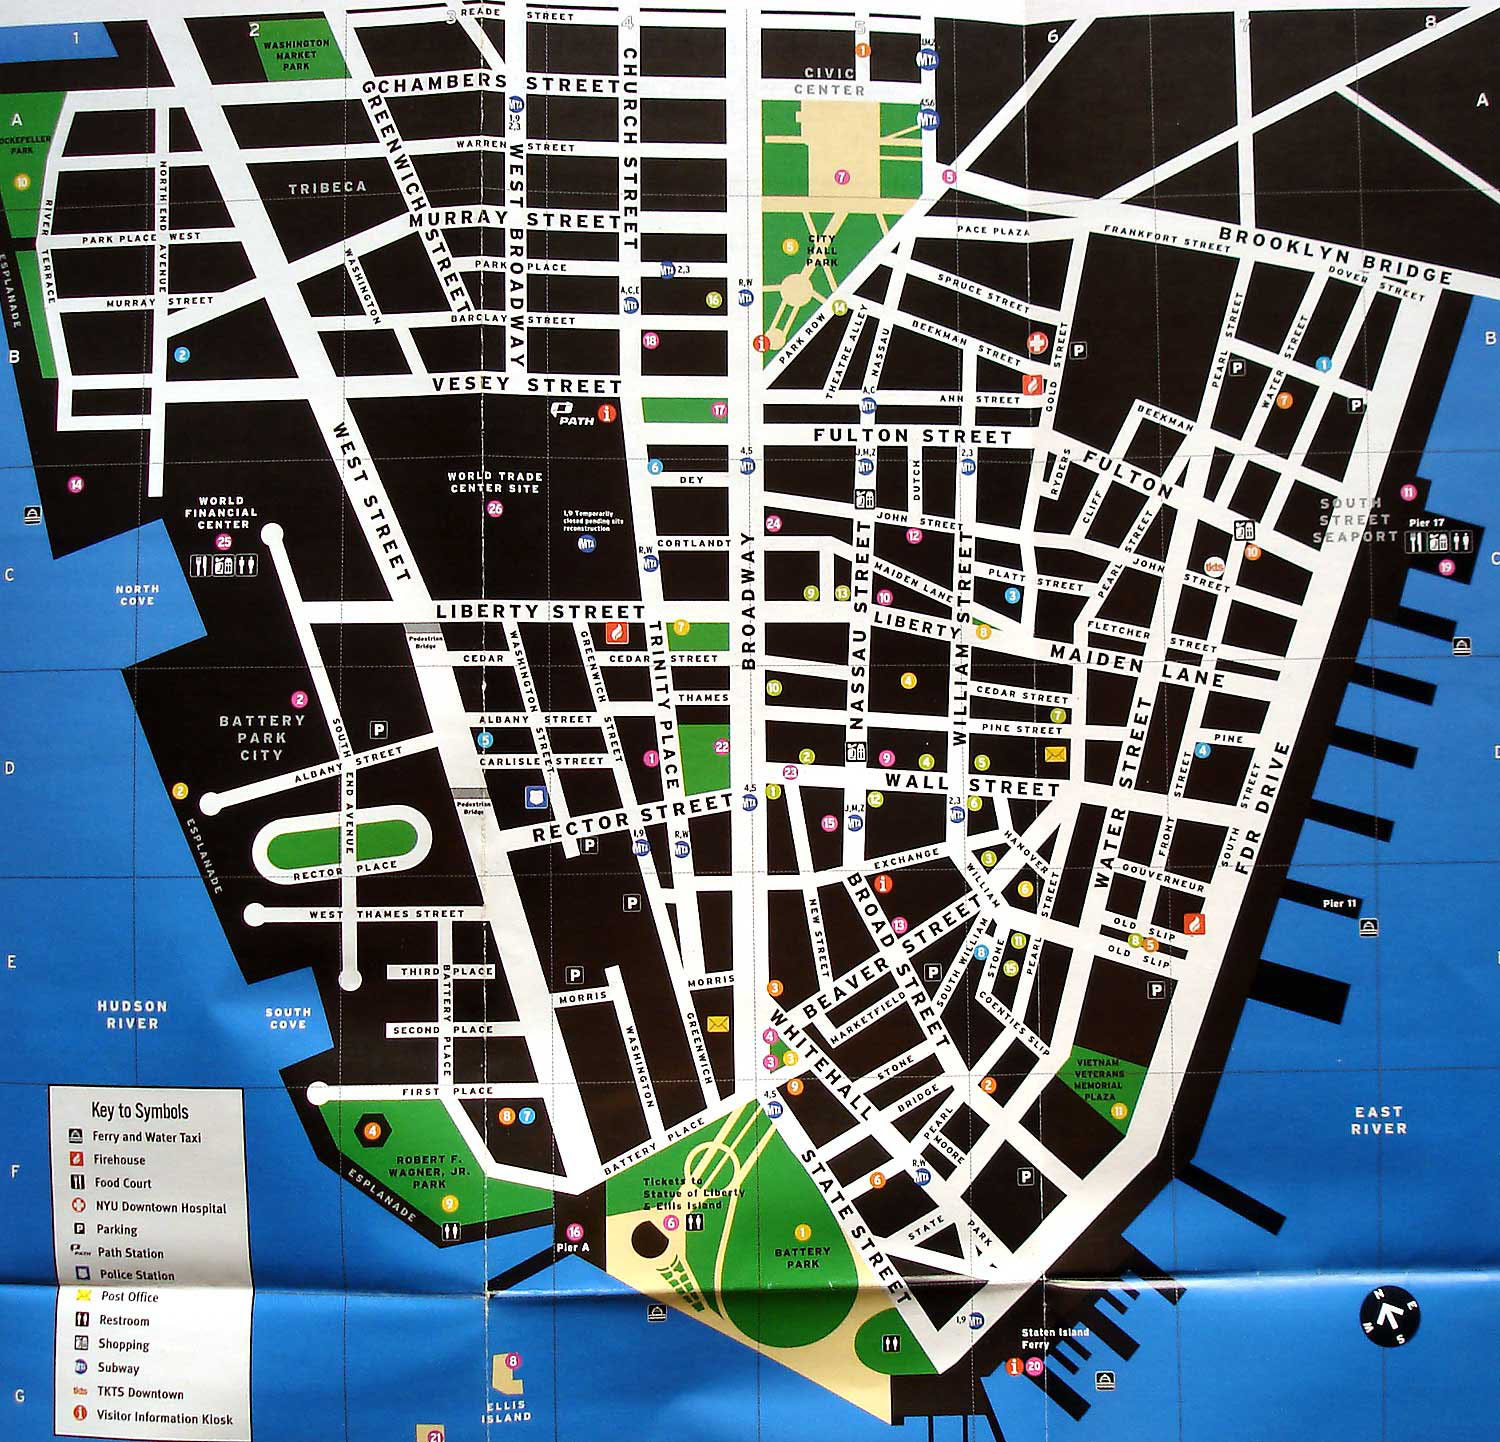 Large tourist map of Lower Manhattan | New York | USA ... on manhattan street map, manhattan sites map, city map, manhattan points of interest map, manhattan sightseeing, streetwise manhattan map, manhattan map printable, simple manhattan map, nyc map, manhattan walking map, midtown manhattan map, manhattan subway map, manhattan train map, central park map, manhattan kansas map, manhattan business map, manhattan map with attractions, manhattan bus map, manhattan art map, manhattan new york,